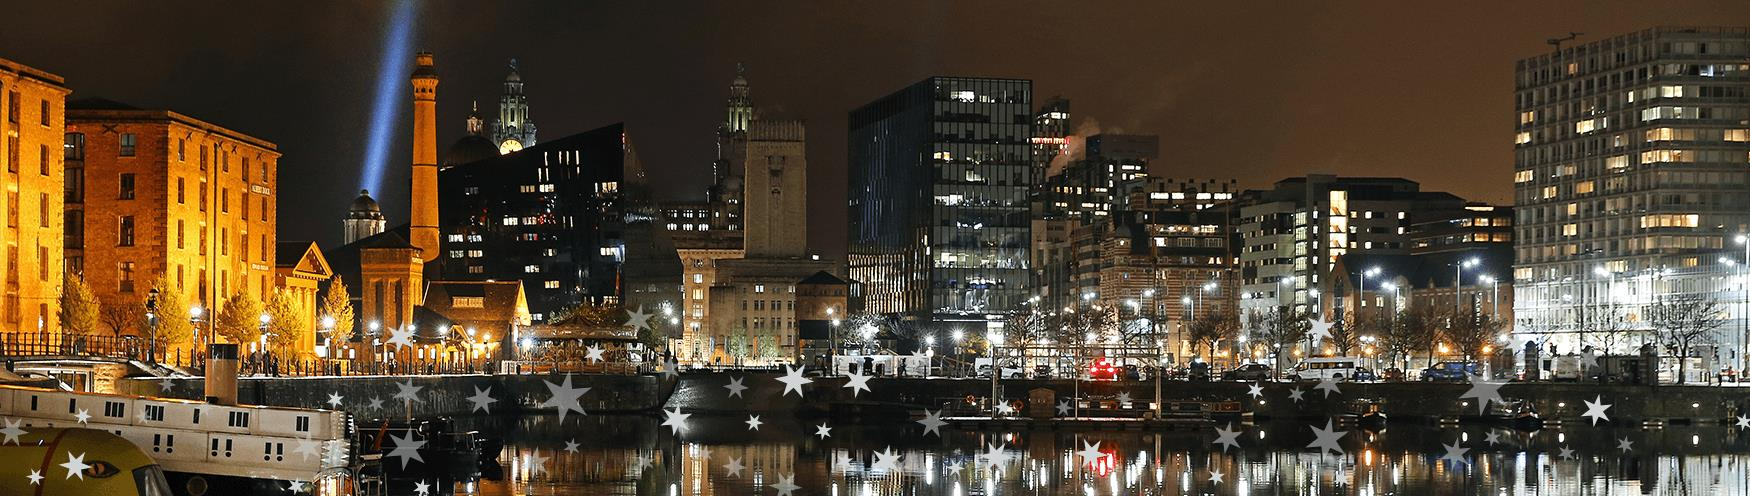 Things to do in Liverpool at Christmas